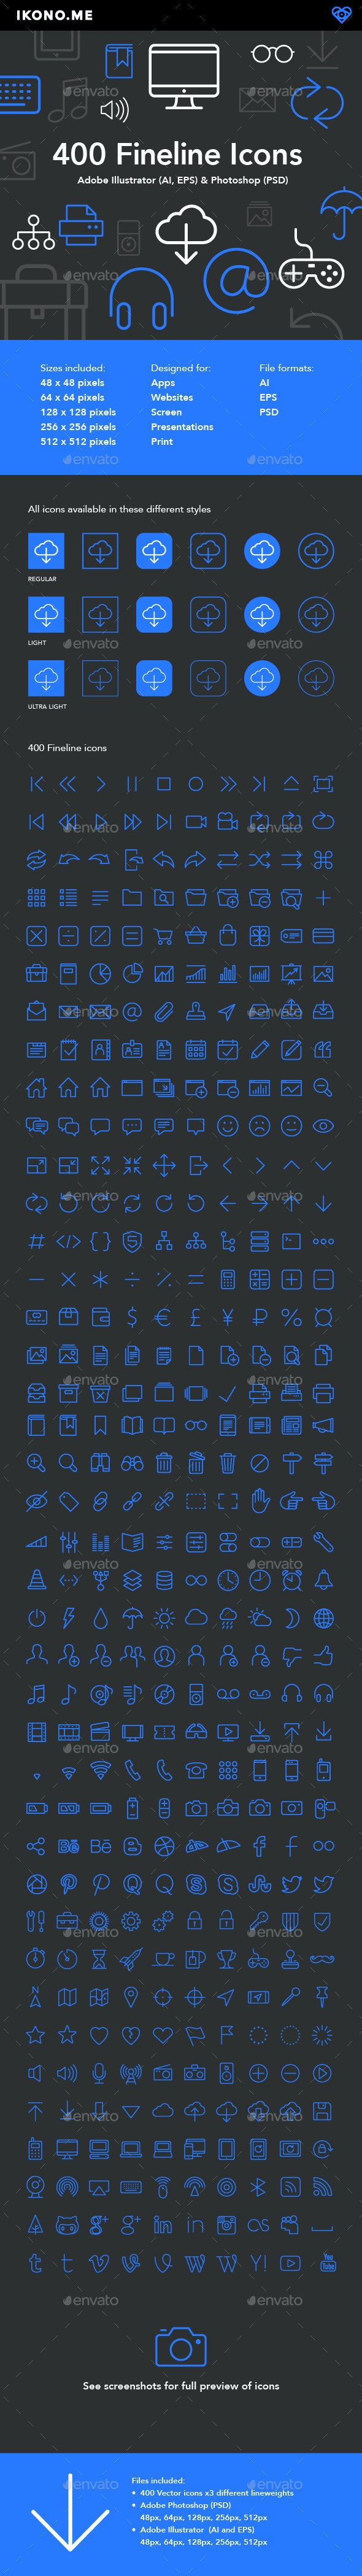 400 Fine Line Icons - Software Icons